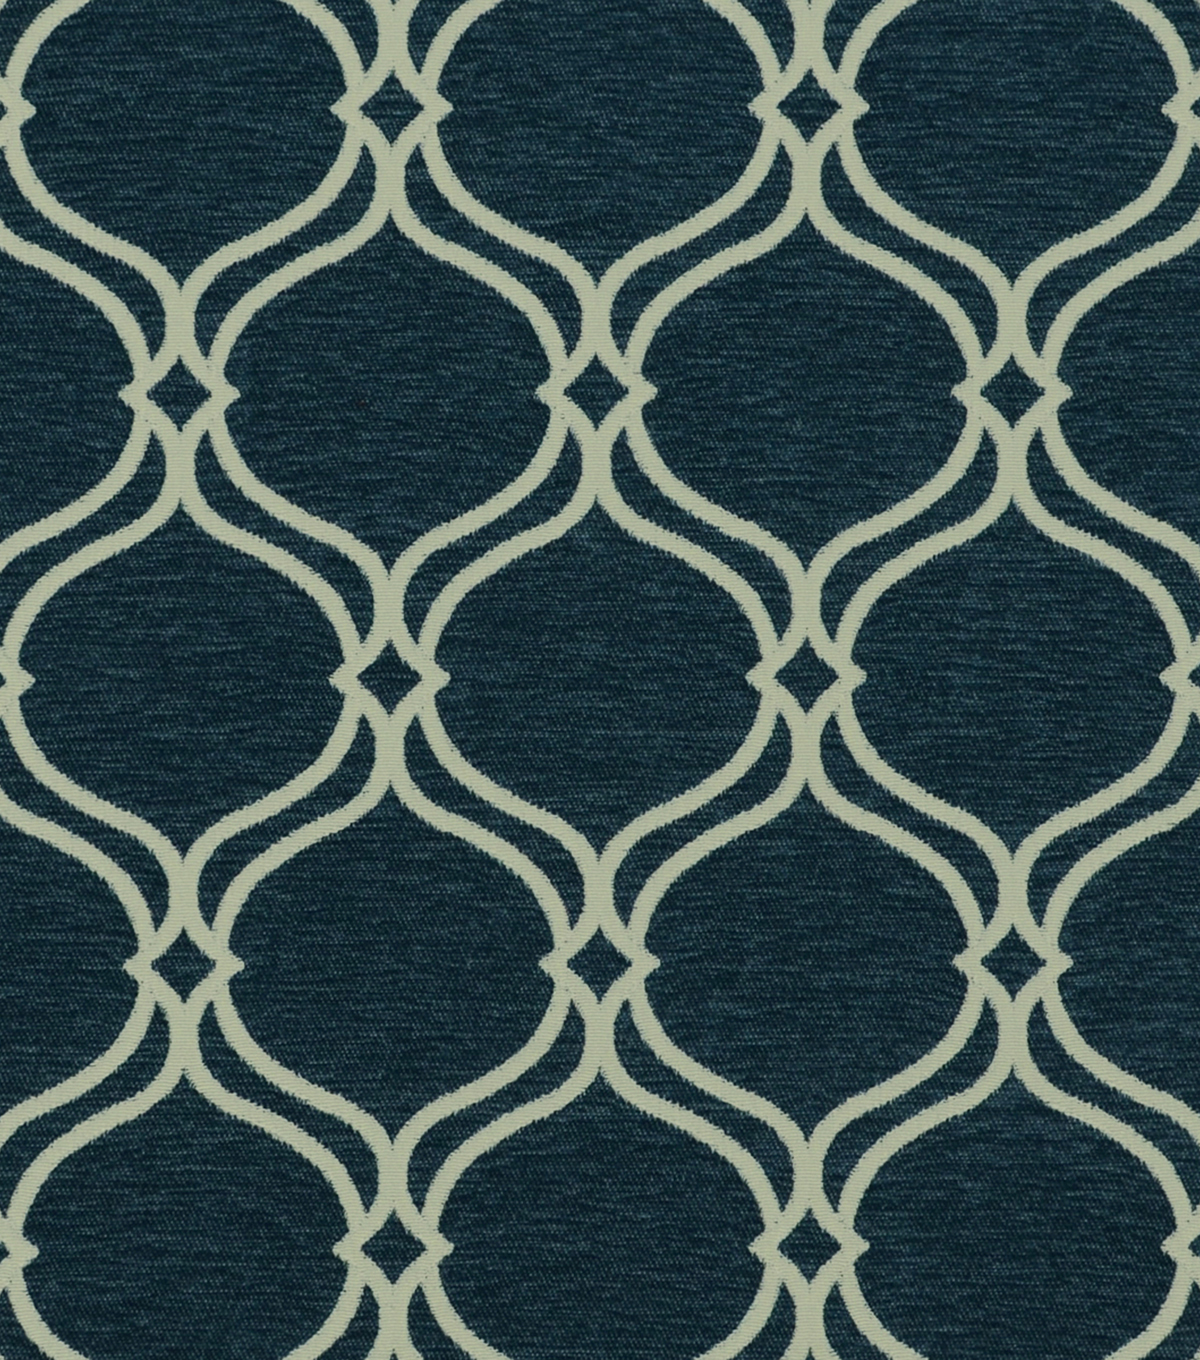 Covington Multi-Purpose Decor Fabric Swatch-Freshn 56